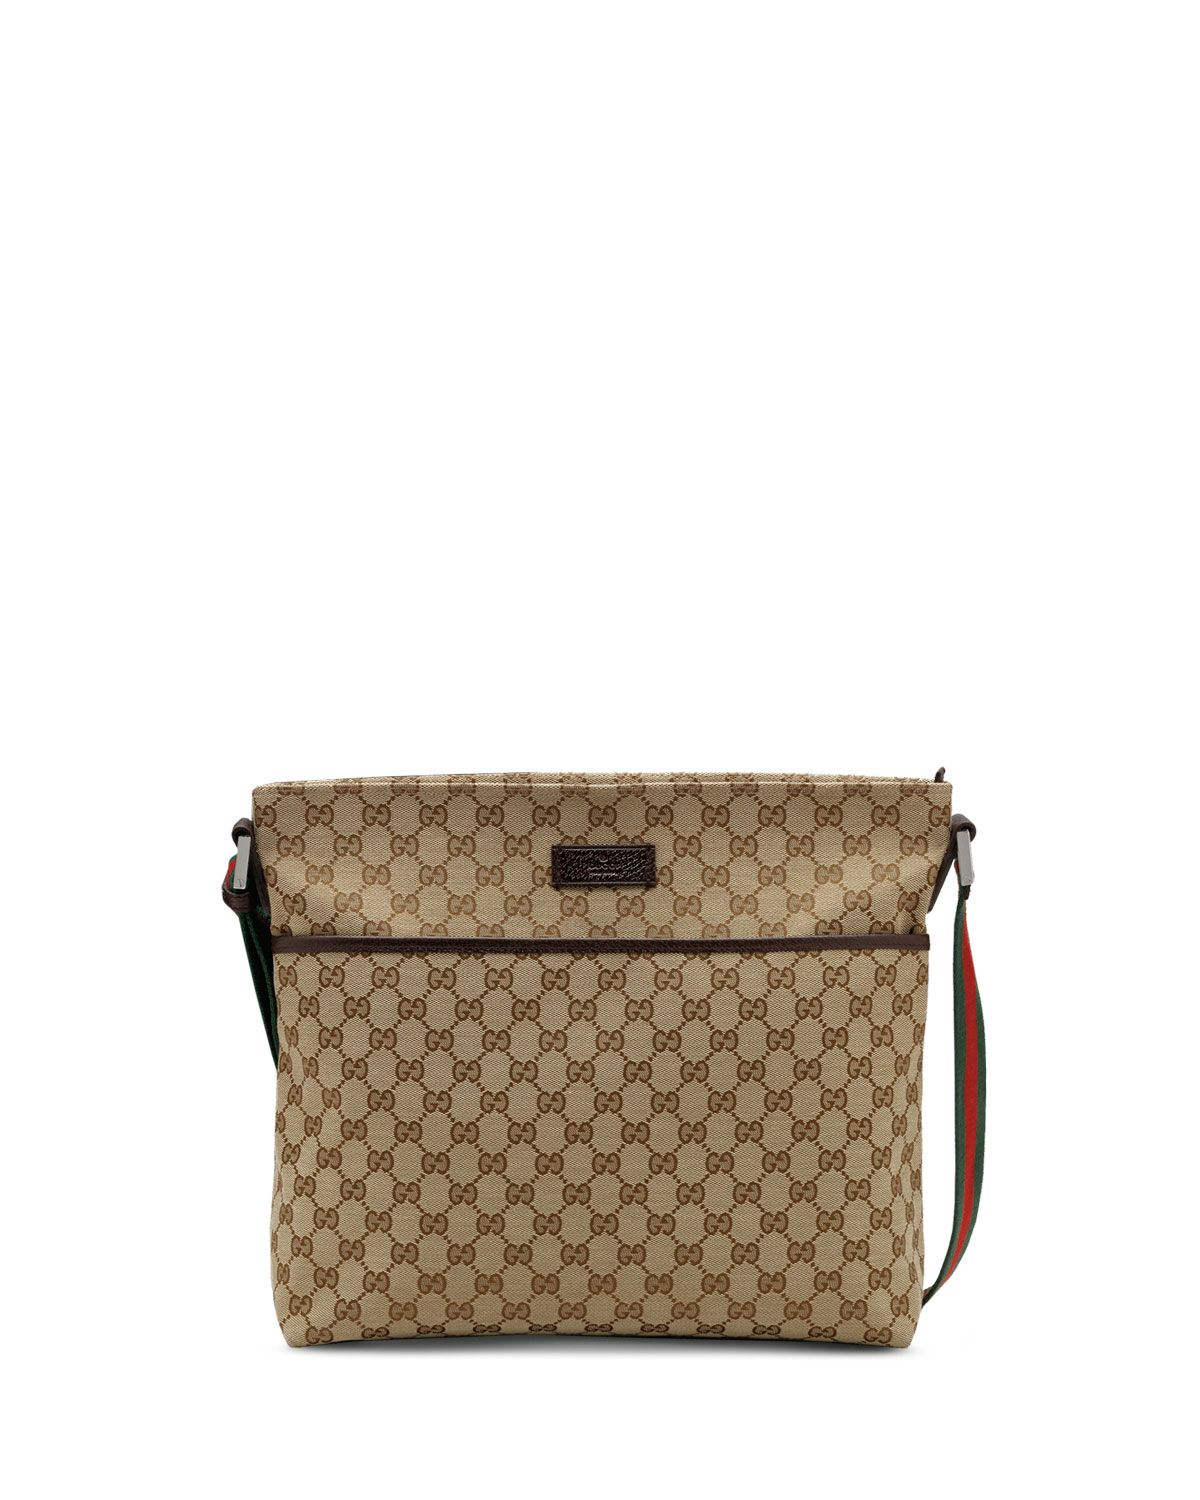 f82468072 Gucci Original GG Pocketed Canvas Messenger Bag with Signature Web Strap,  Brown